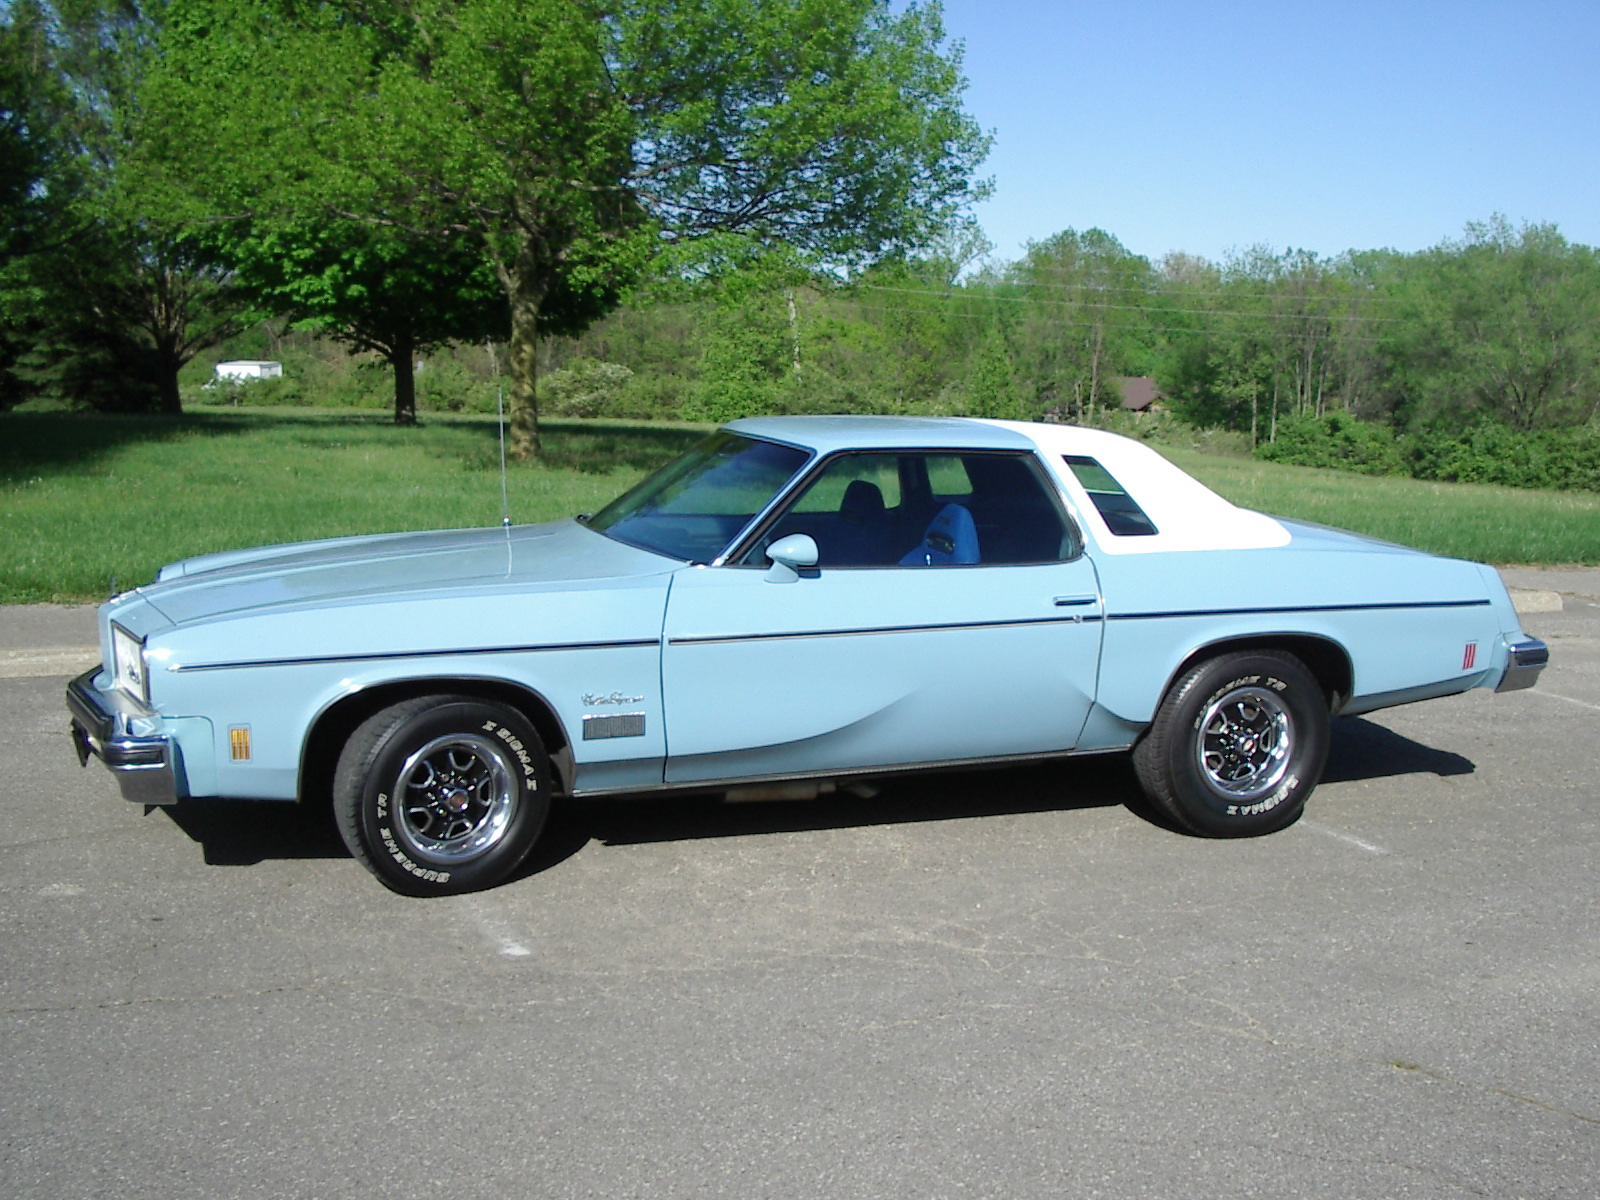 1975 oldsmobile cutlass supreme pictures cargurus for 1975 oldsmobile omega salon